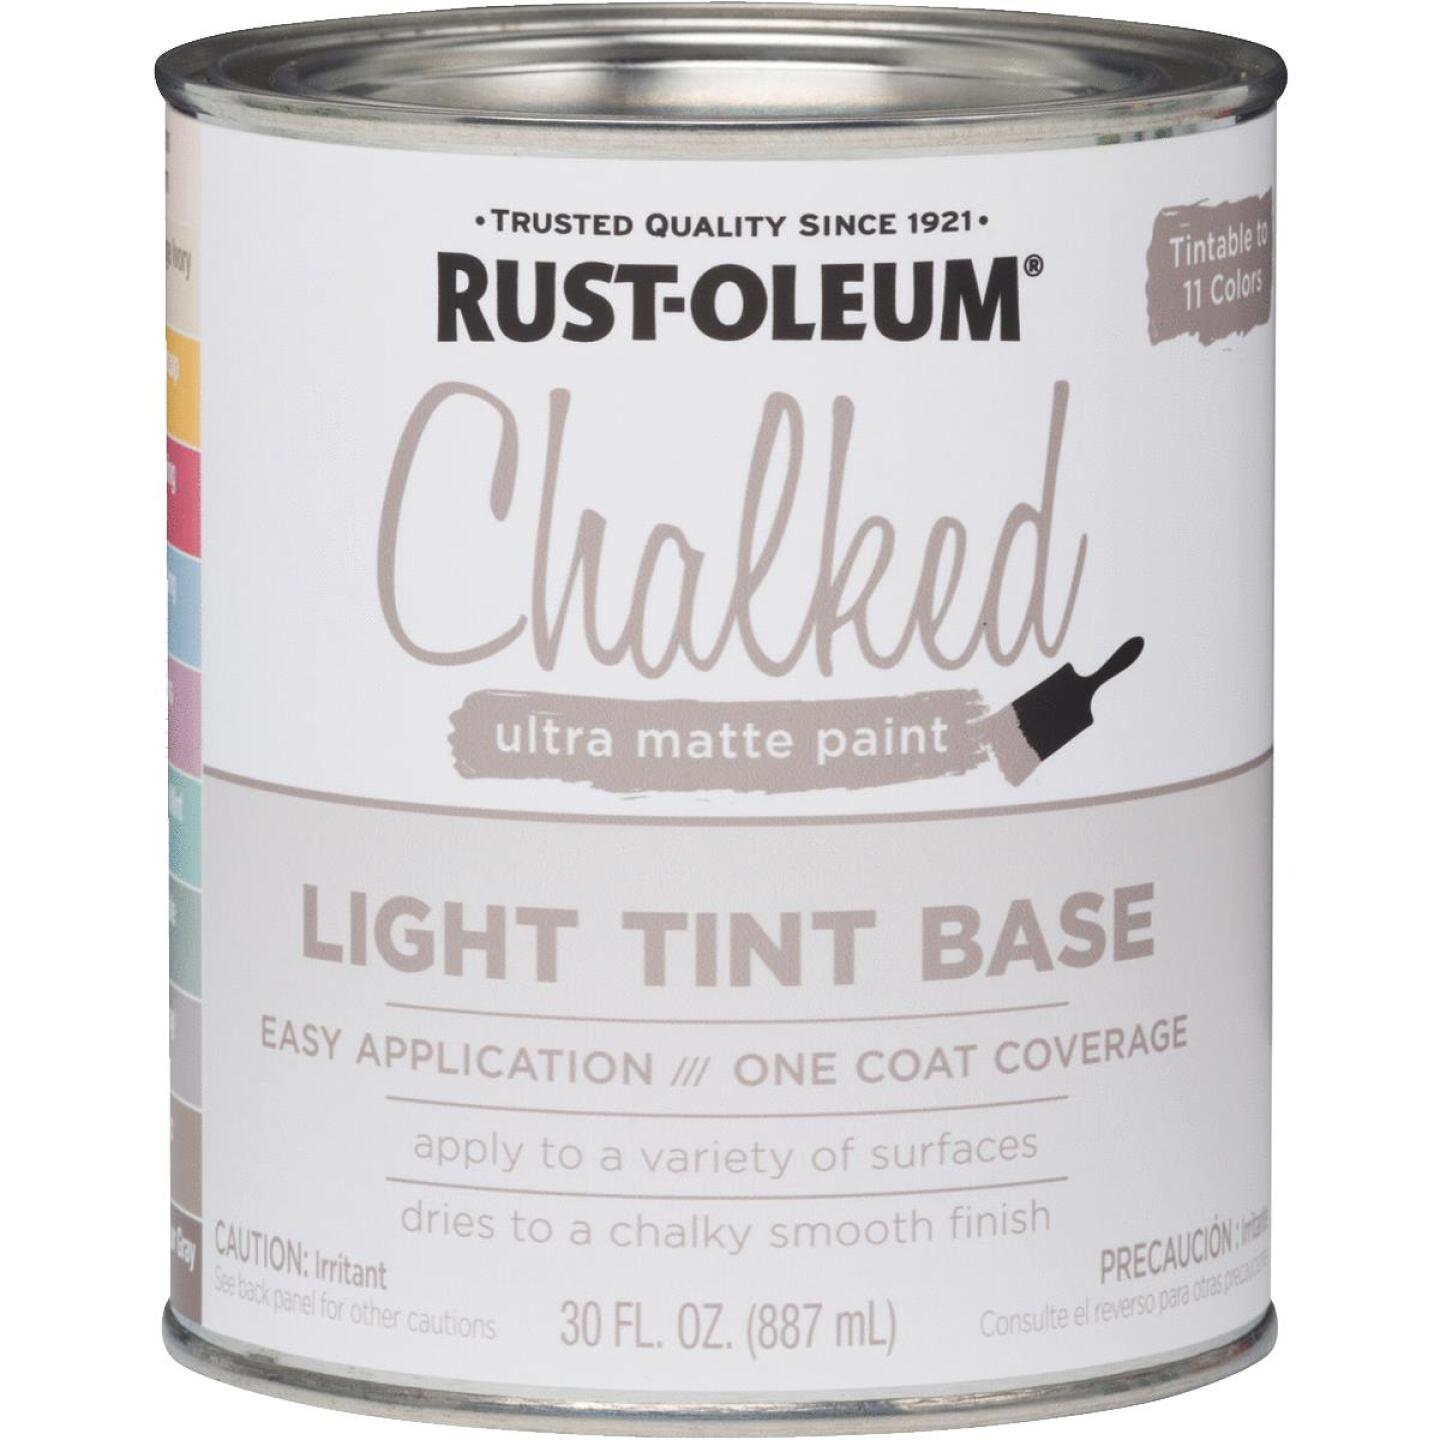 Rust-Oleum Chalked Light Tint Ultra Matte 29 Oz. Chalk Paint Image 1